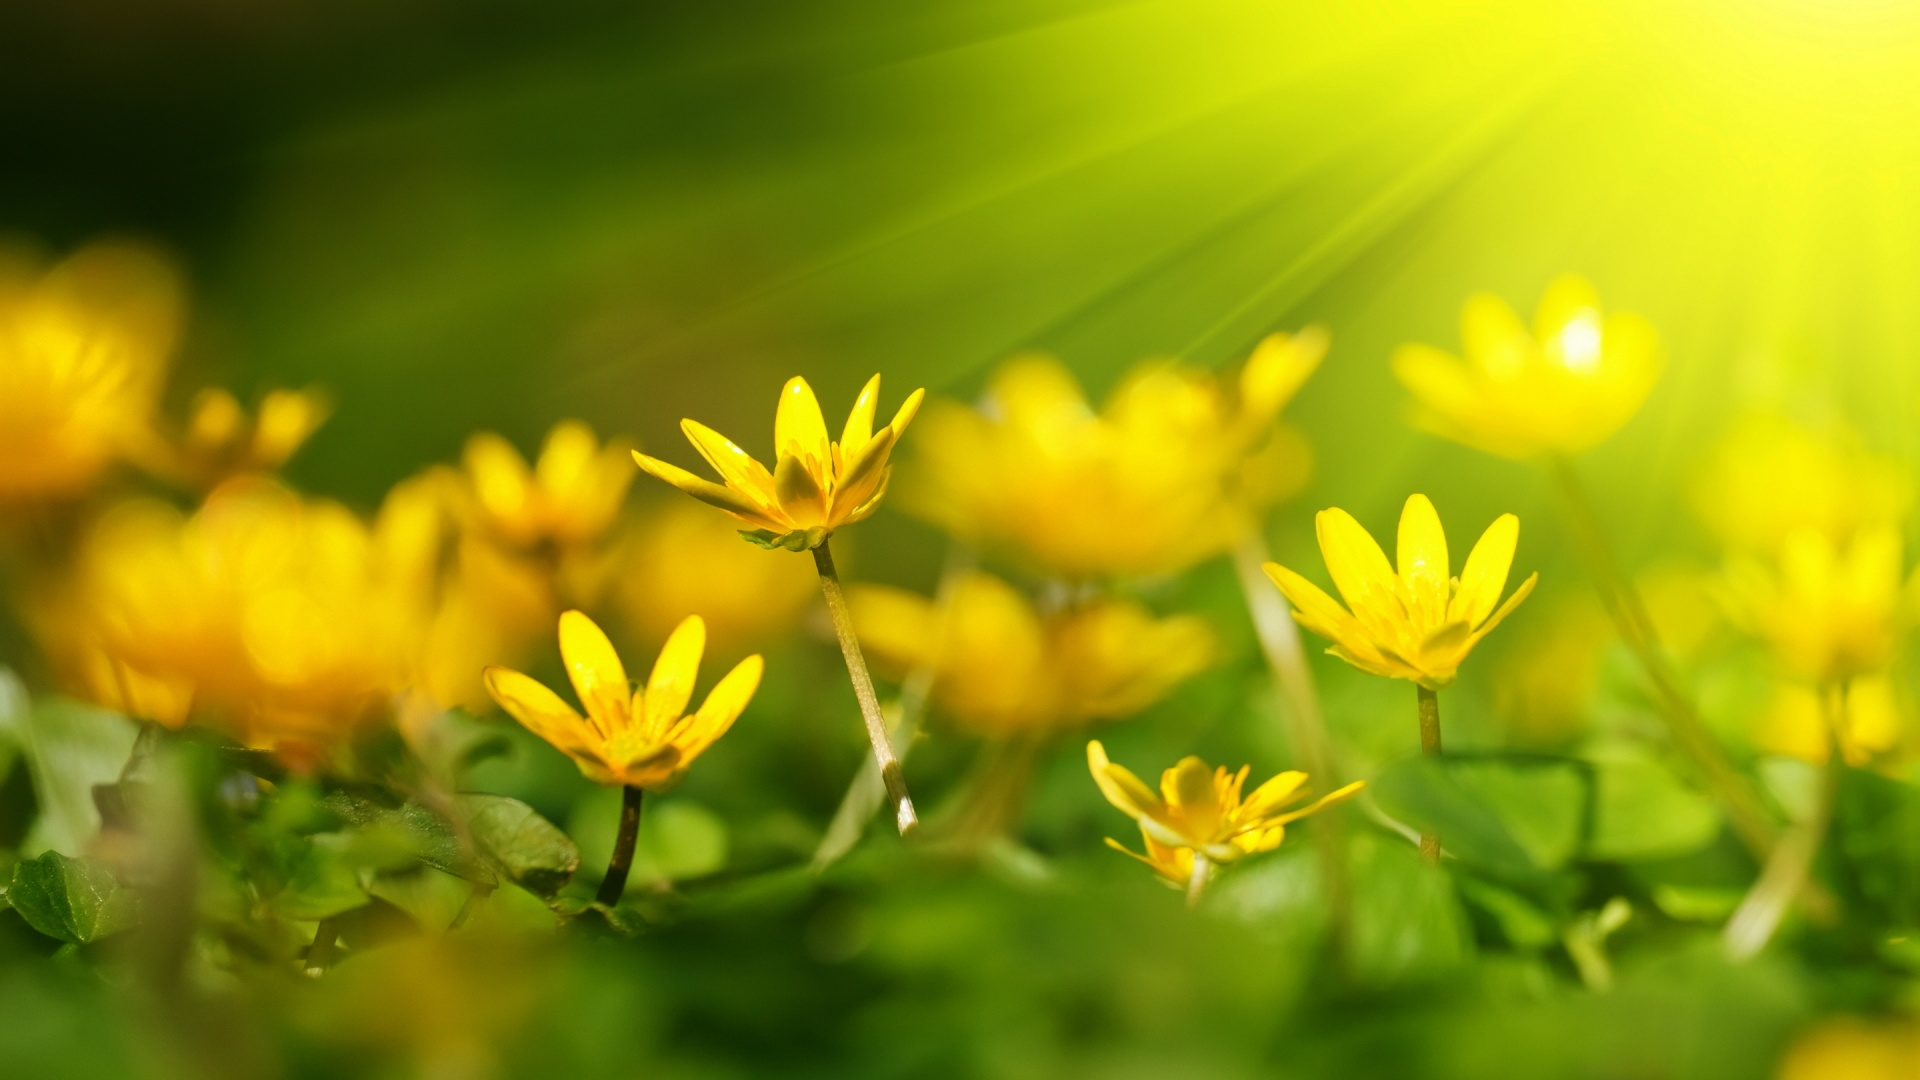 Yellow Flowers Wallpapers High Quality Download Free